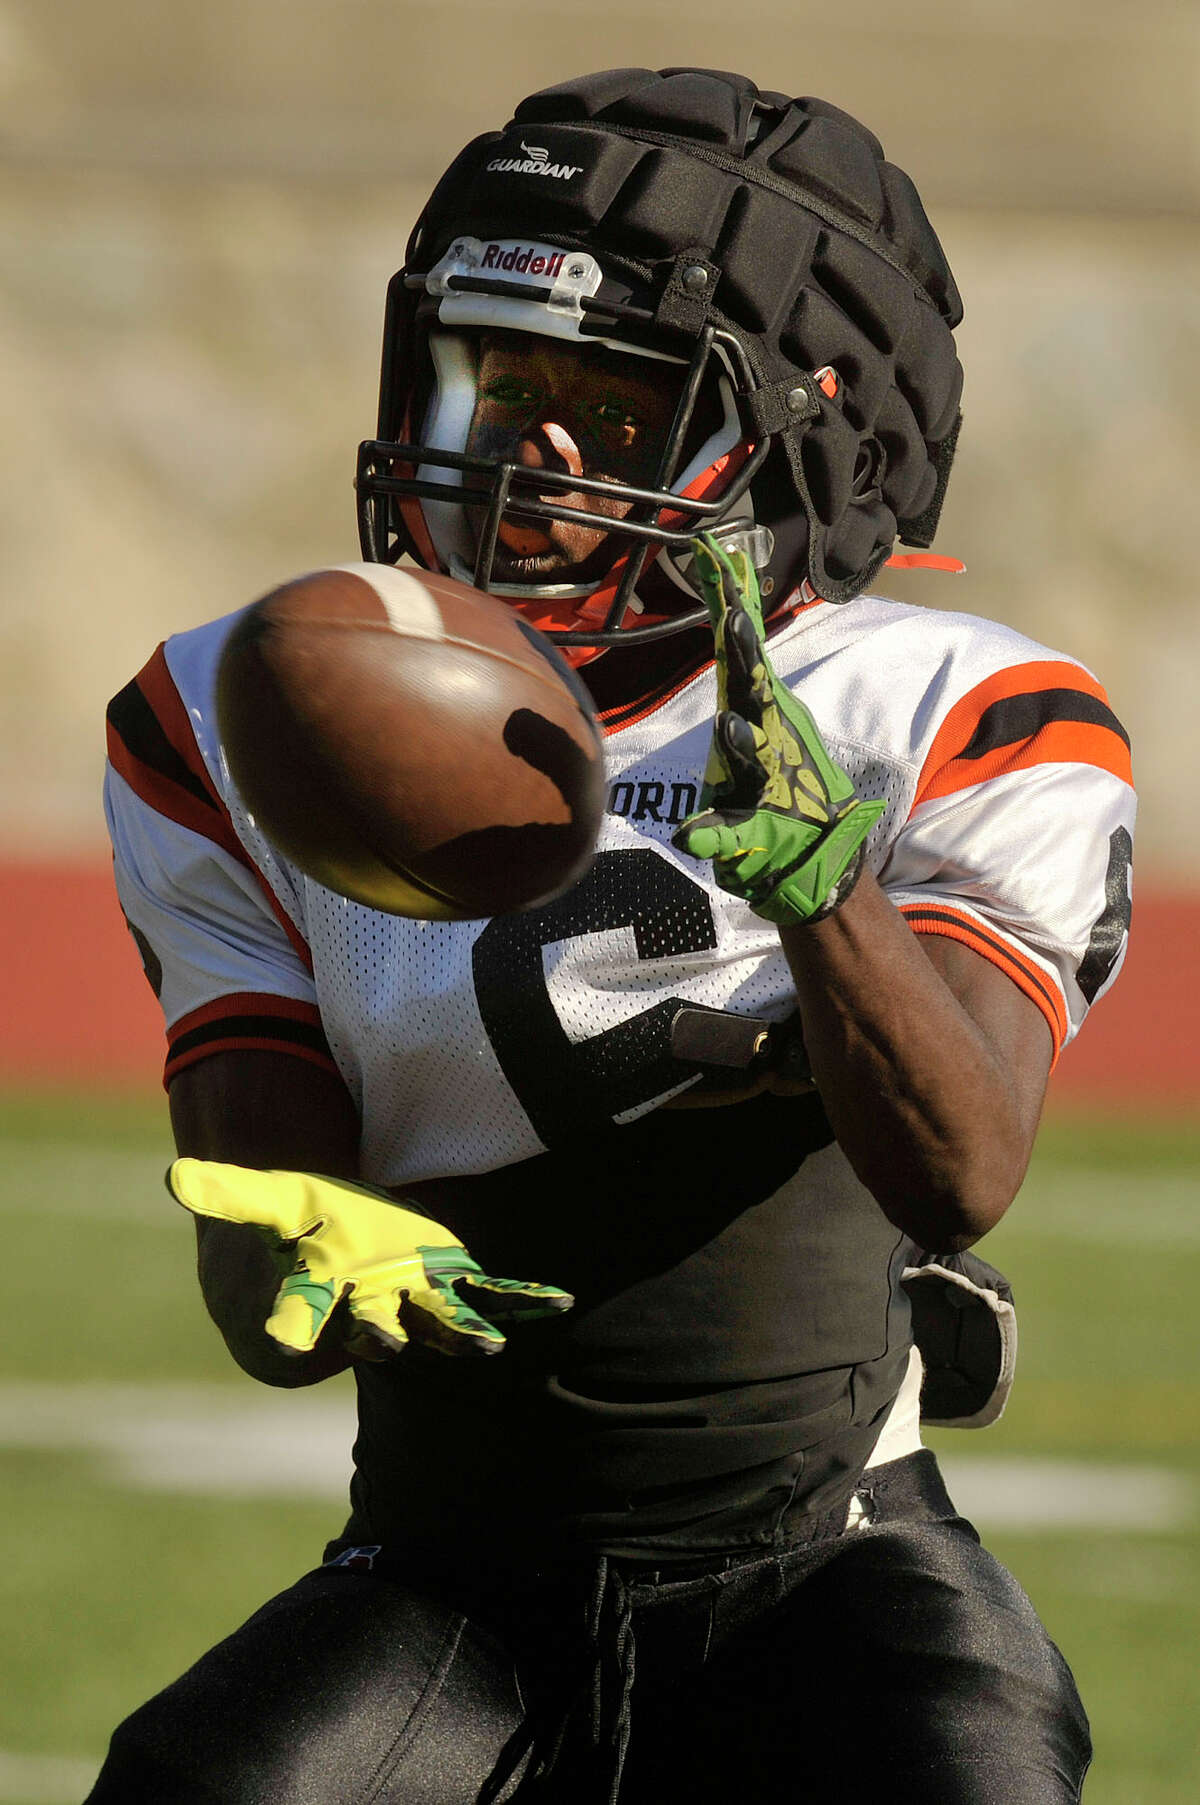 Wide receiver and captain Tyequan Bonaparte attempts a catch during Stamford High School football practice at Boyle Stadium in Stamford, Conn., on Monday, Sept. 14, 2015. Stamford plays Darien this Friday at 6:30 p.m. at home.